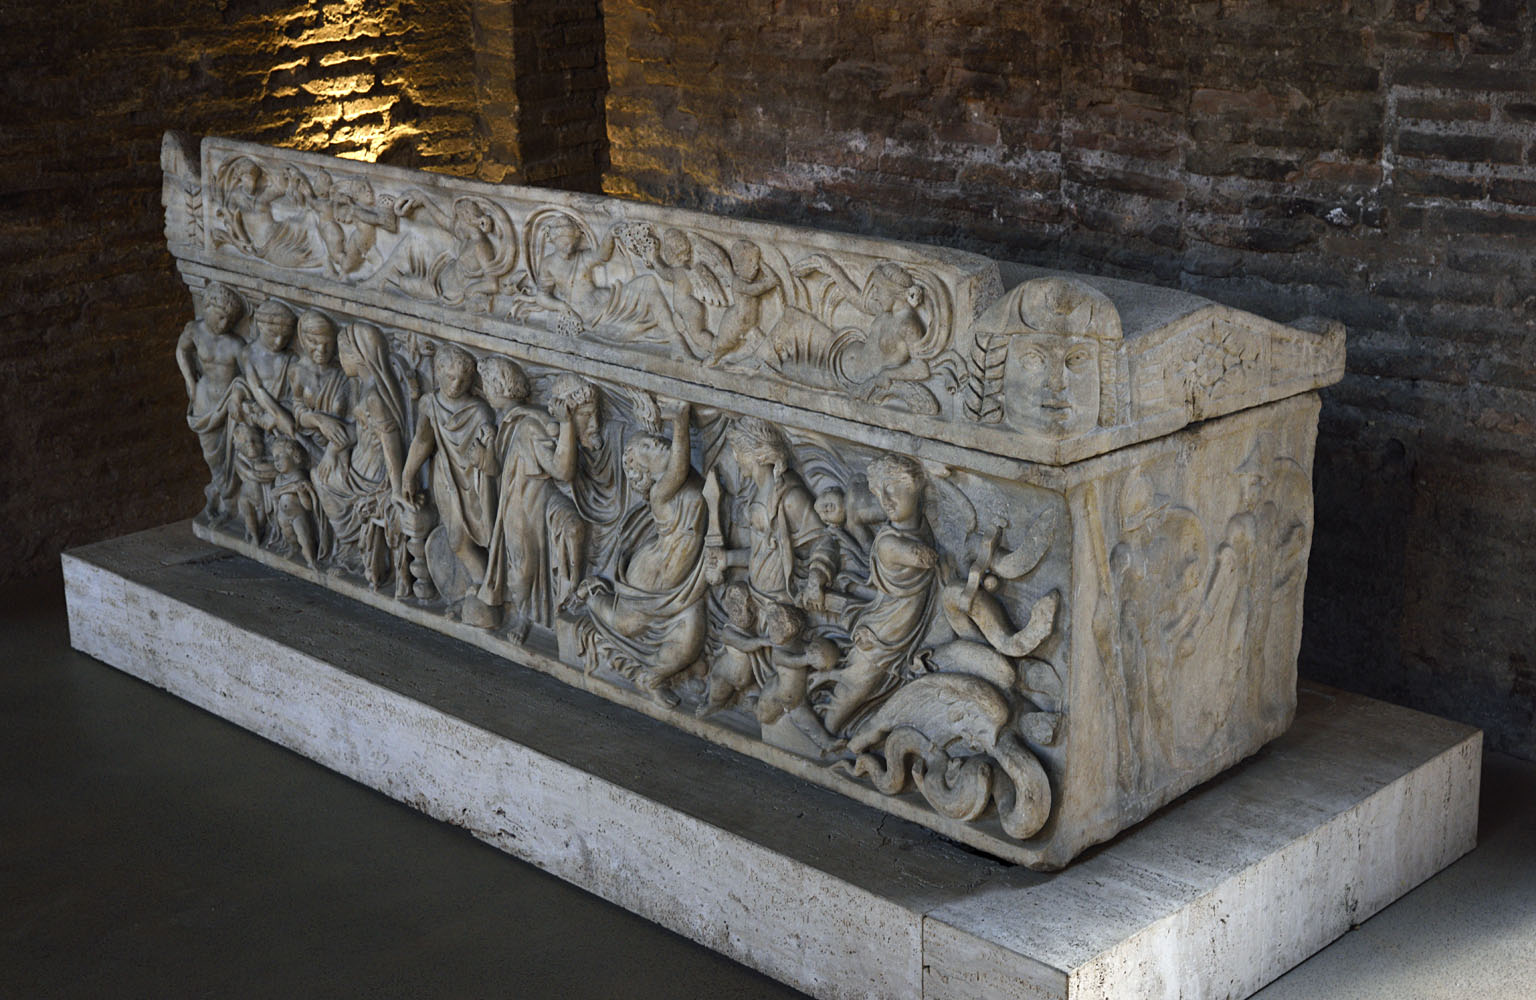 Sarcophagus with the myth of Medea. Marble. 2-nd half of the 2-nd cent. CE. Rome, Roman National Museum, Baths of Diocletian, Aula X